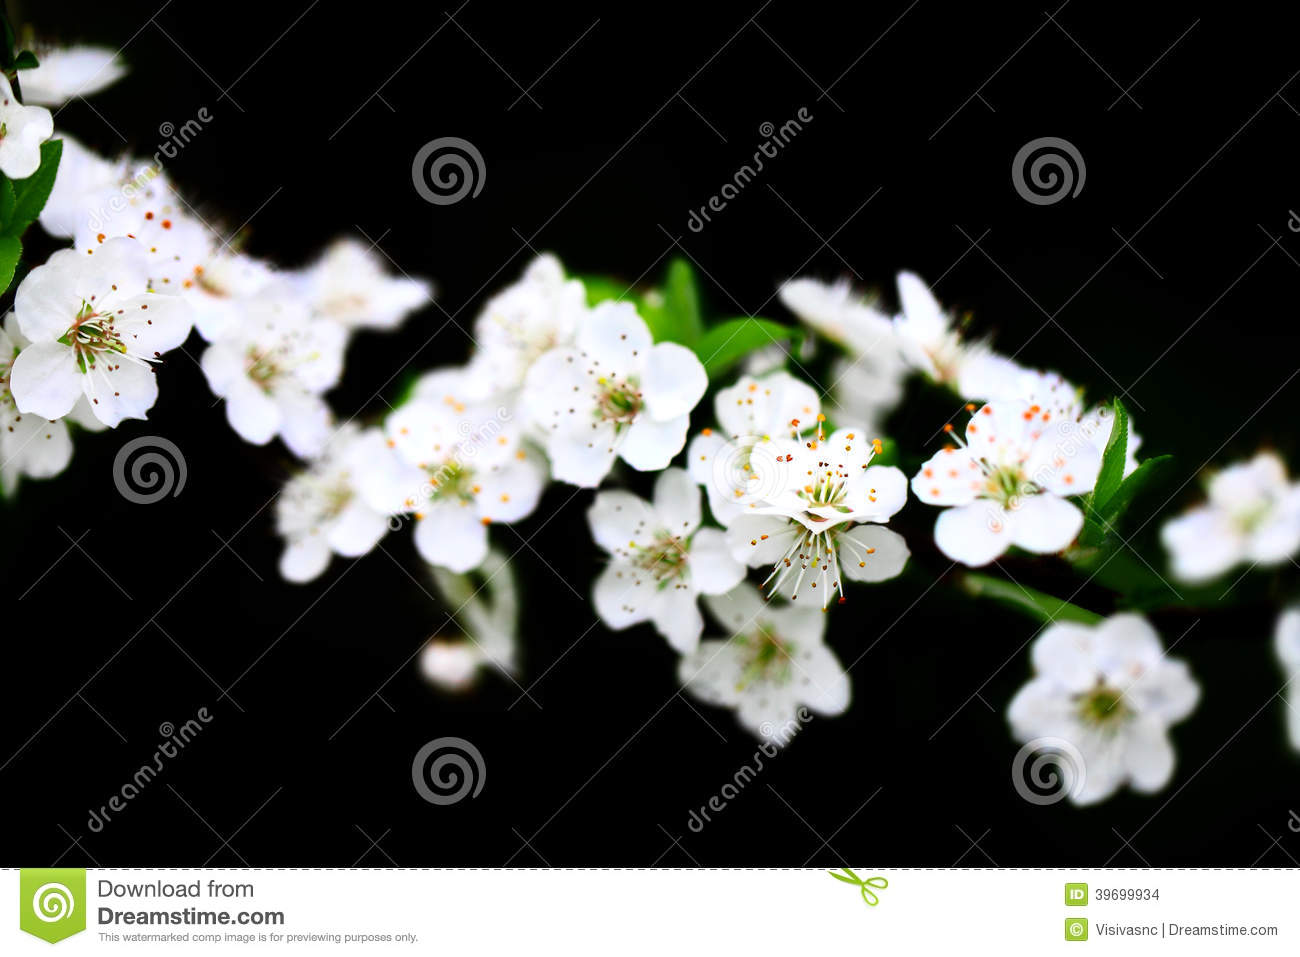 Branch of white flowers on black background stock photo image of branch of white flowers on black background mightylinksfo